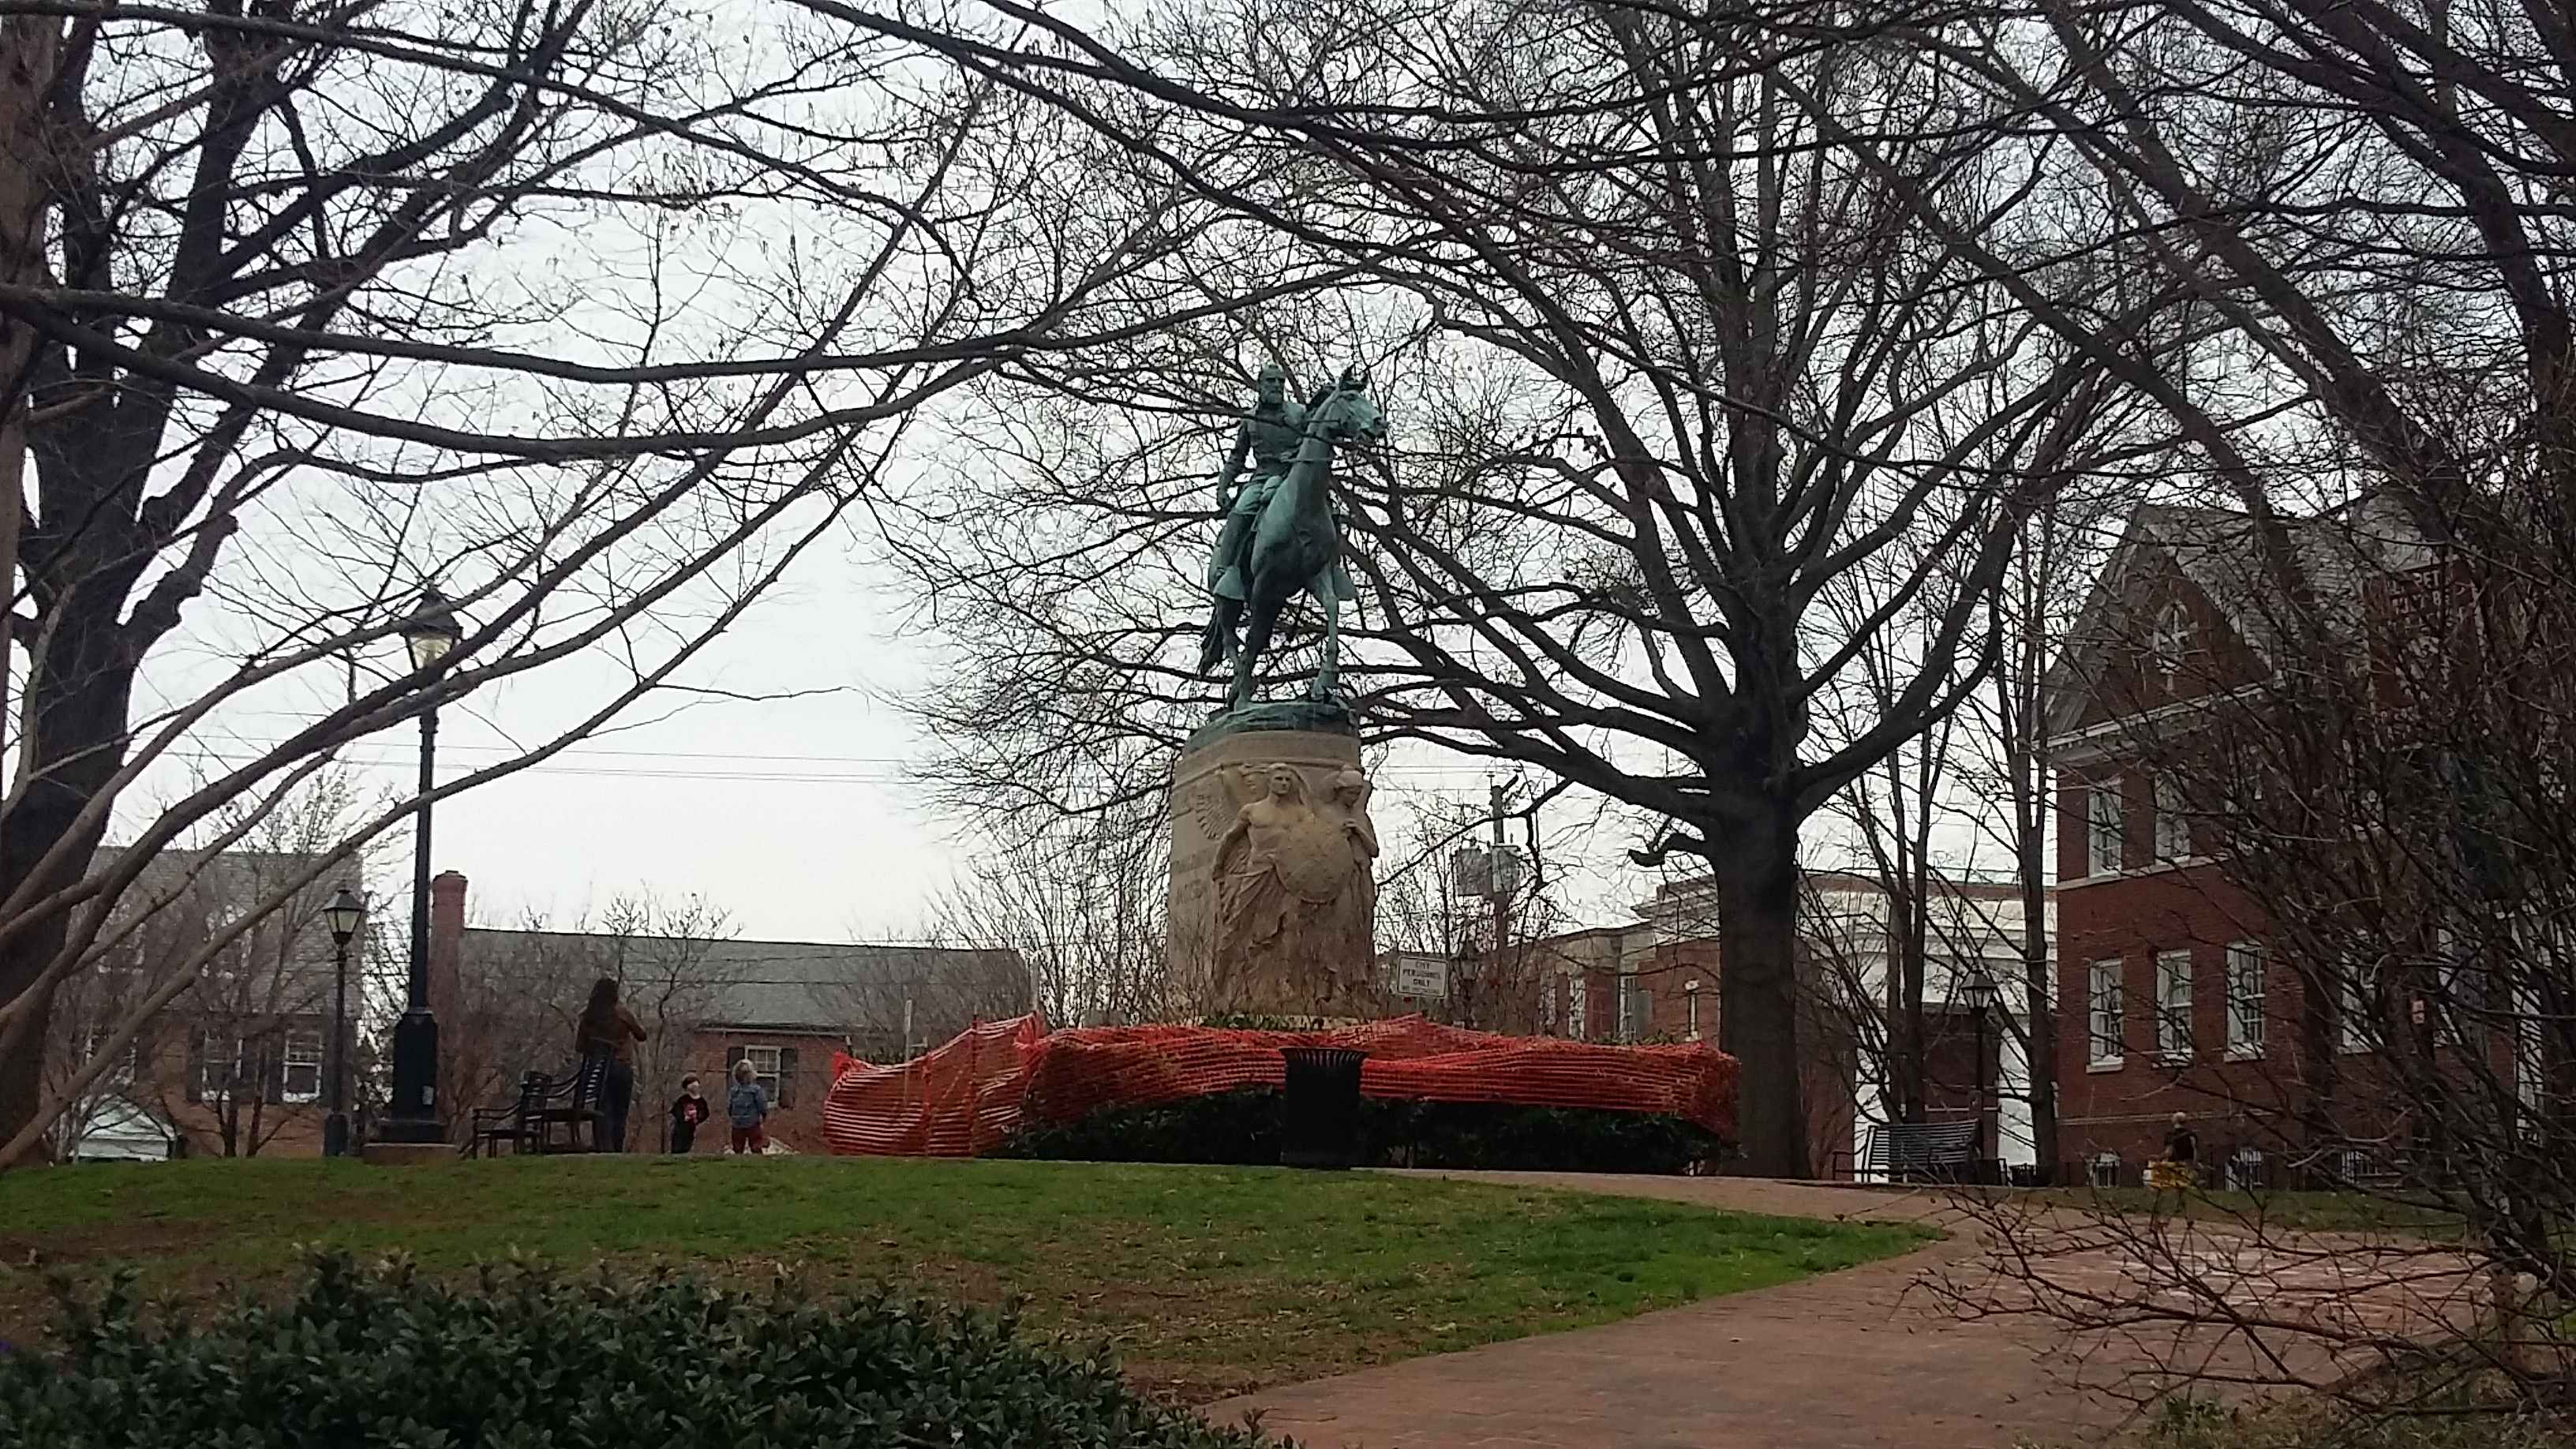 City removes statue shrouds following court order